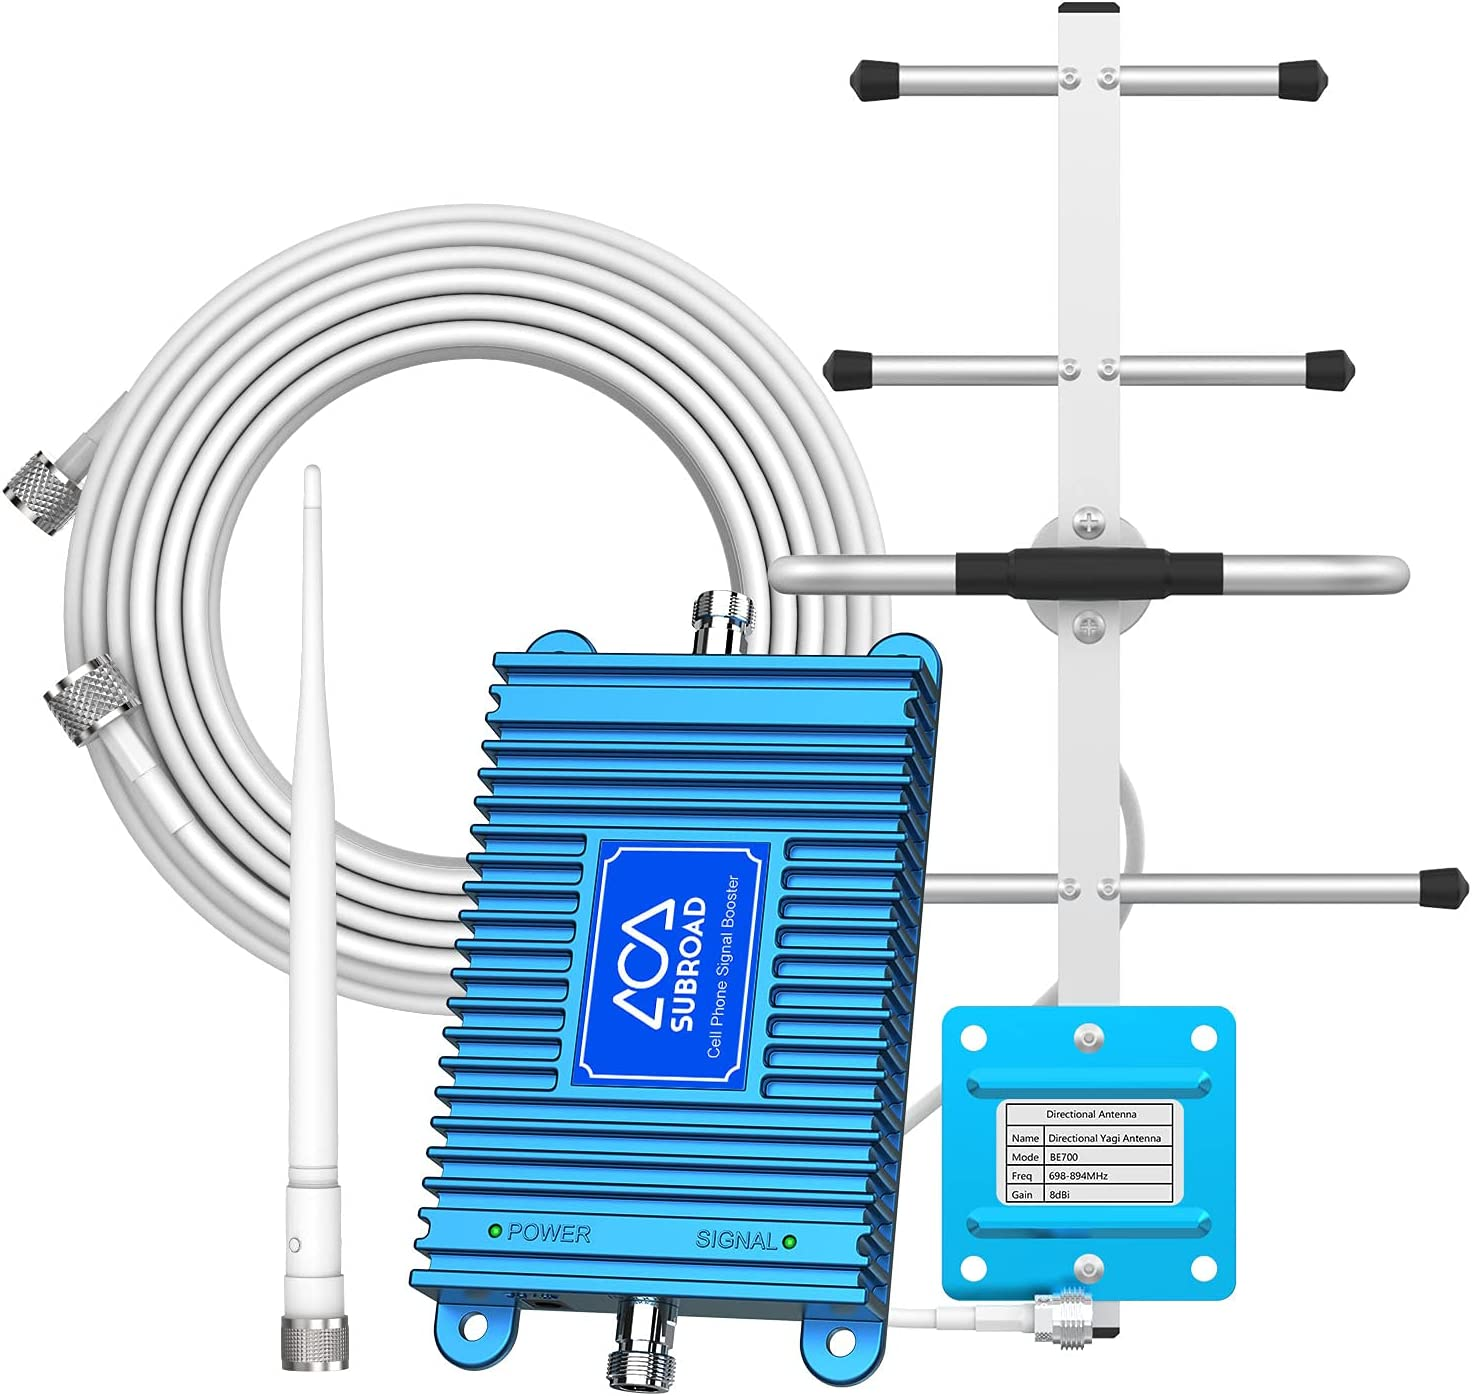 Home Cell Signal Booster for Verizon AT&T T-Mobile 4G LTE 700Mhz Band 13/12/17 Enhances Your Cellular Data and Voice in Home Up to 3,000 Sq. Ft Verizon Cellular Signal Booster for Home